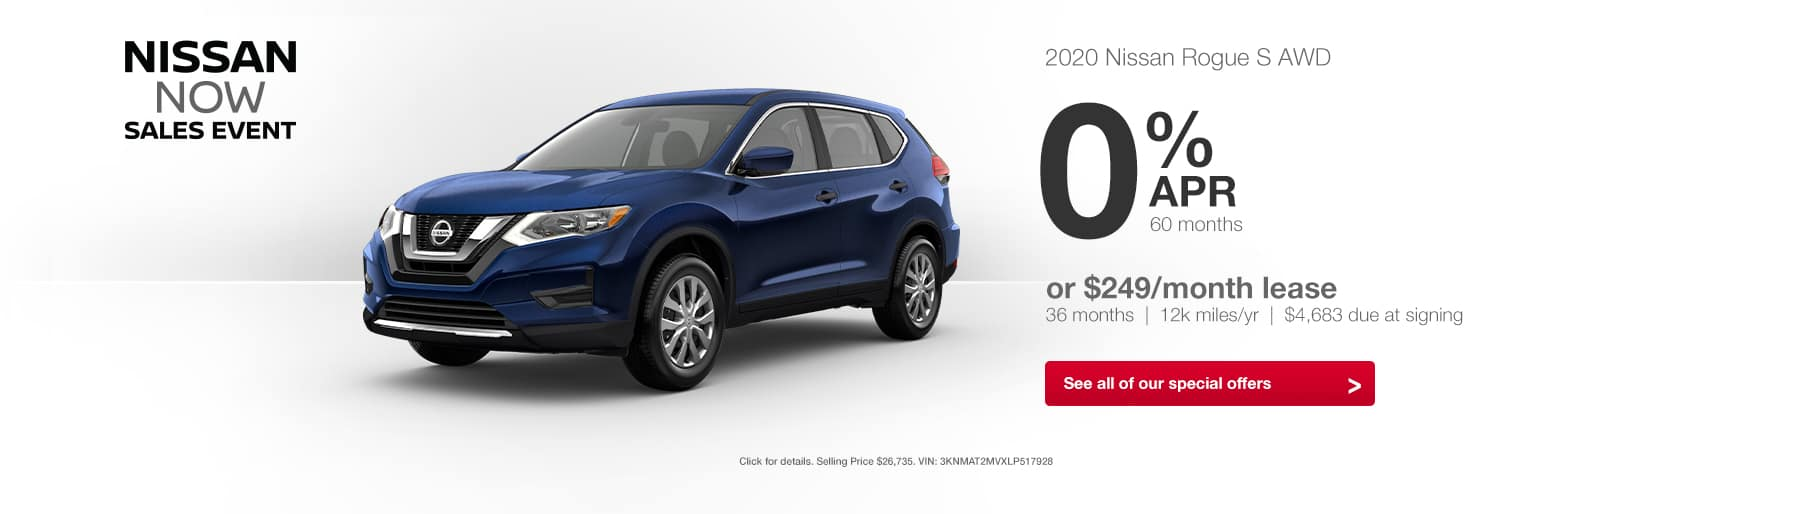 2020 Nissan Rogue Nissan Now Sales Event Lease Finance Special